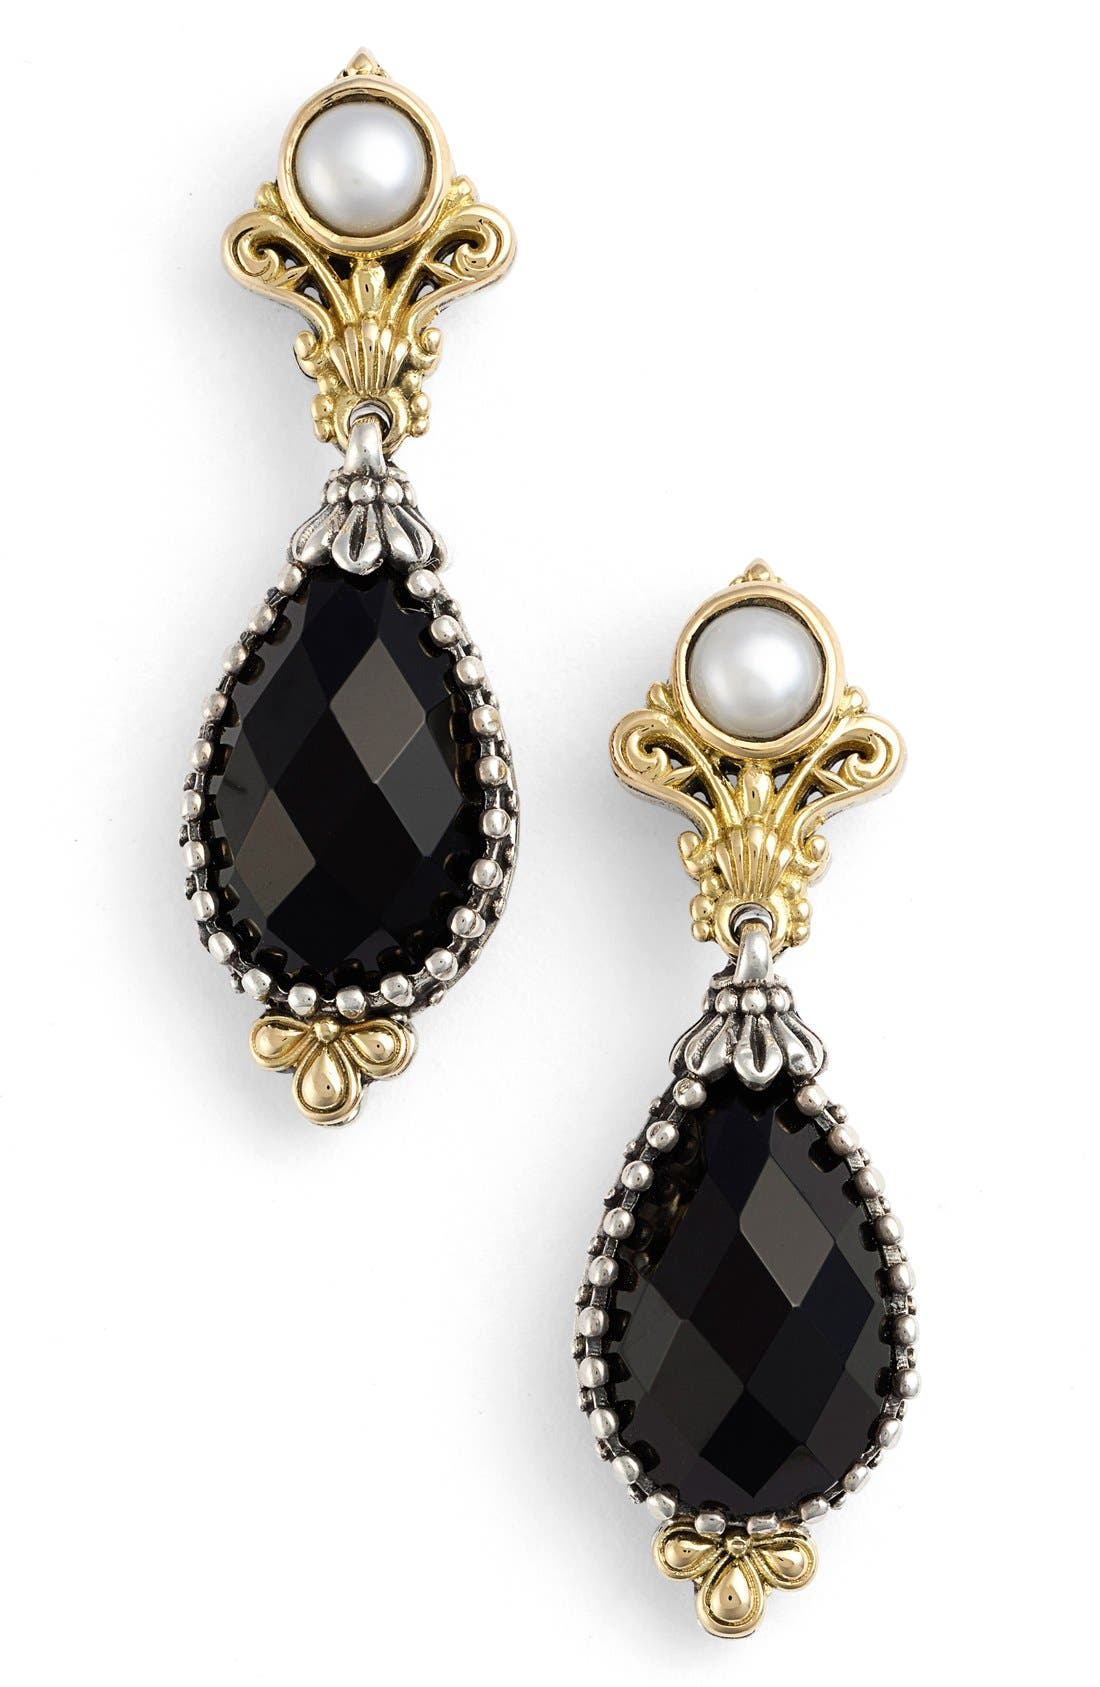 KONSTANTINO 'Nykta' Pearl & Black Onyx Drop Earrings